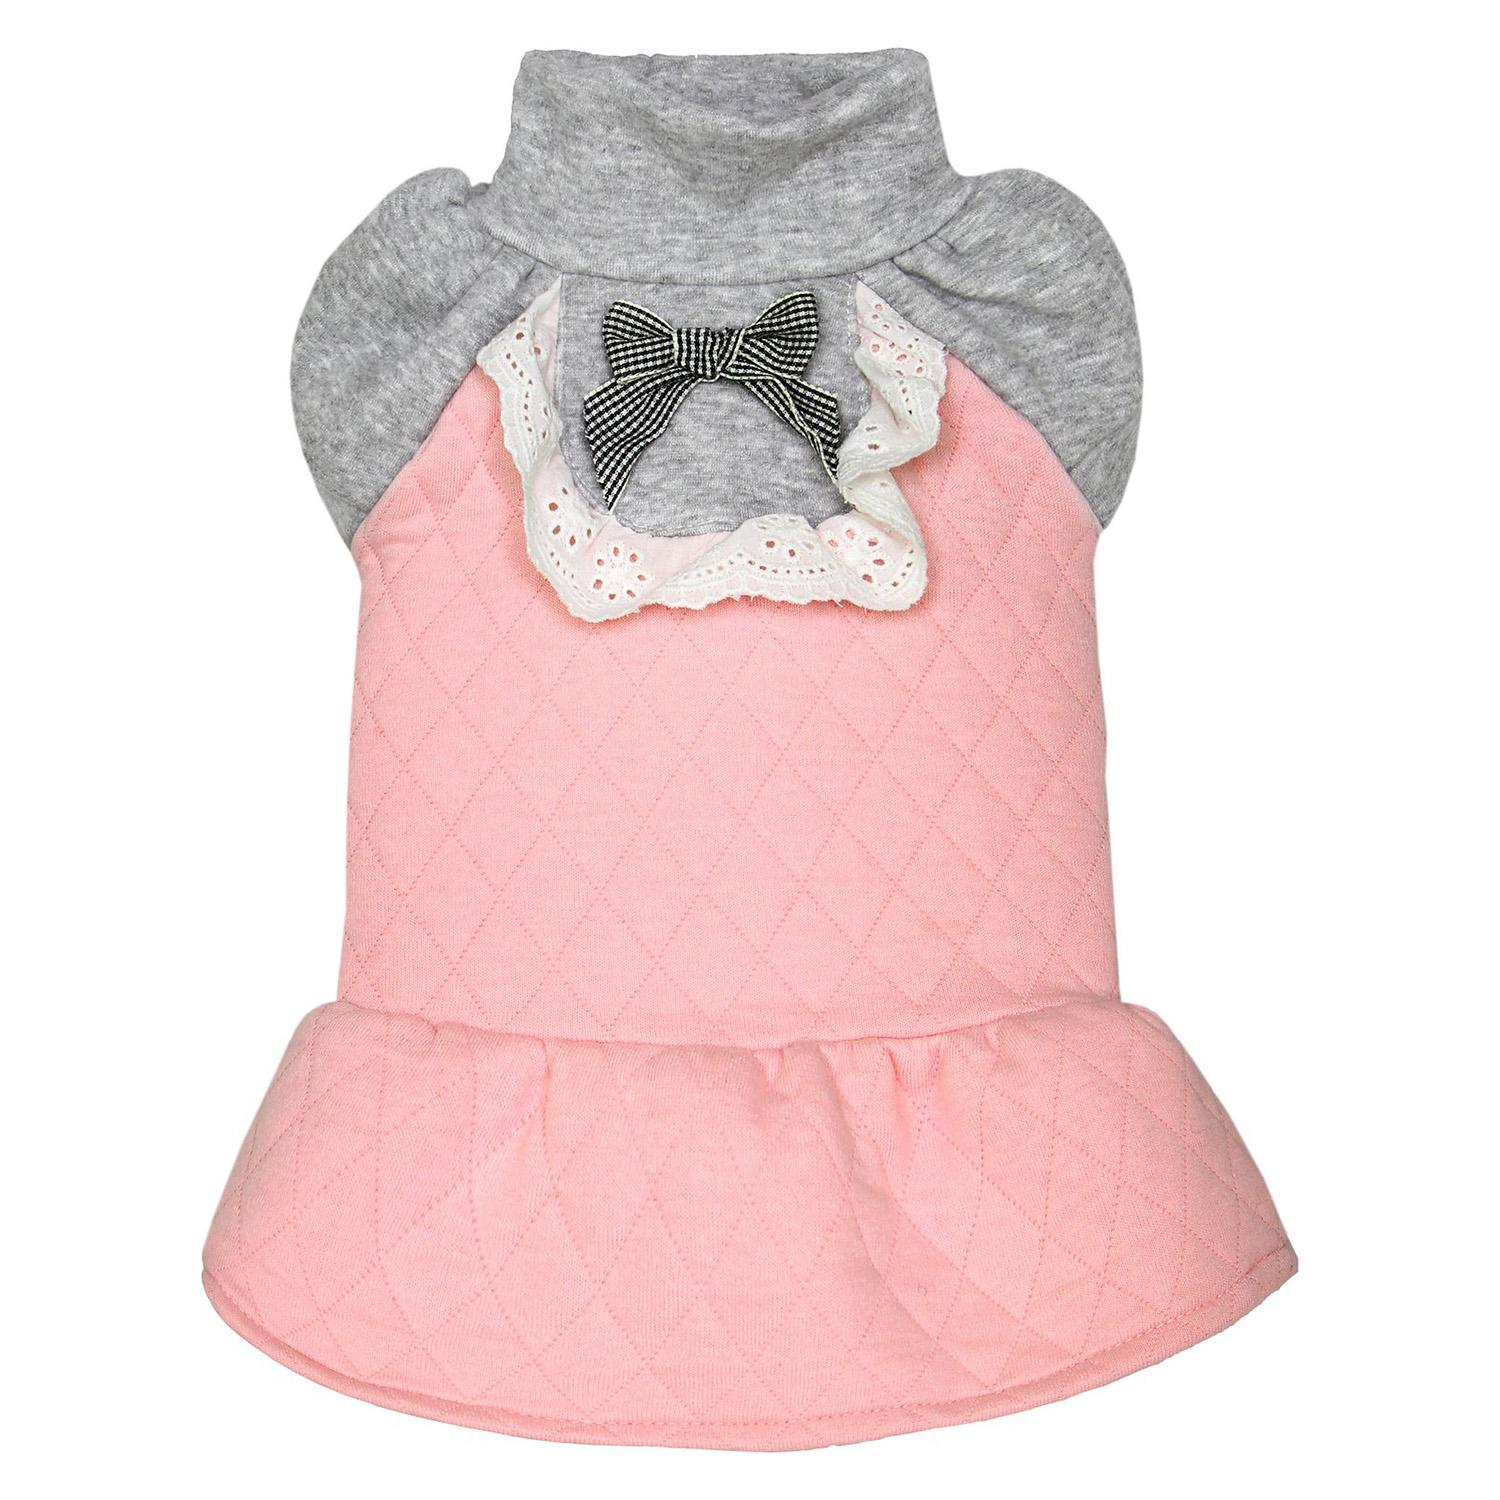 Dobaz Quilted Winter Dog Dress - Pink